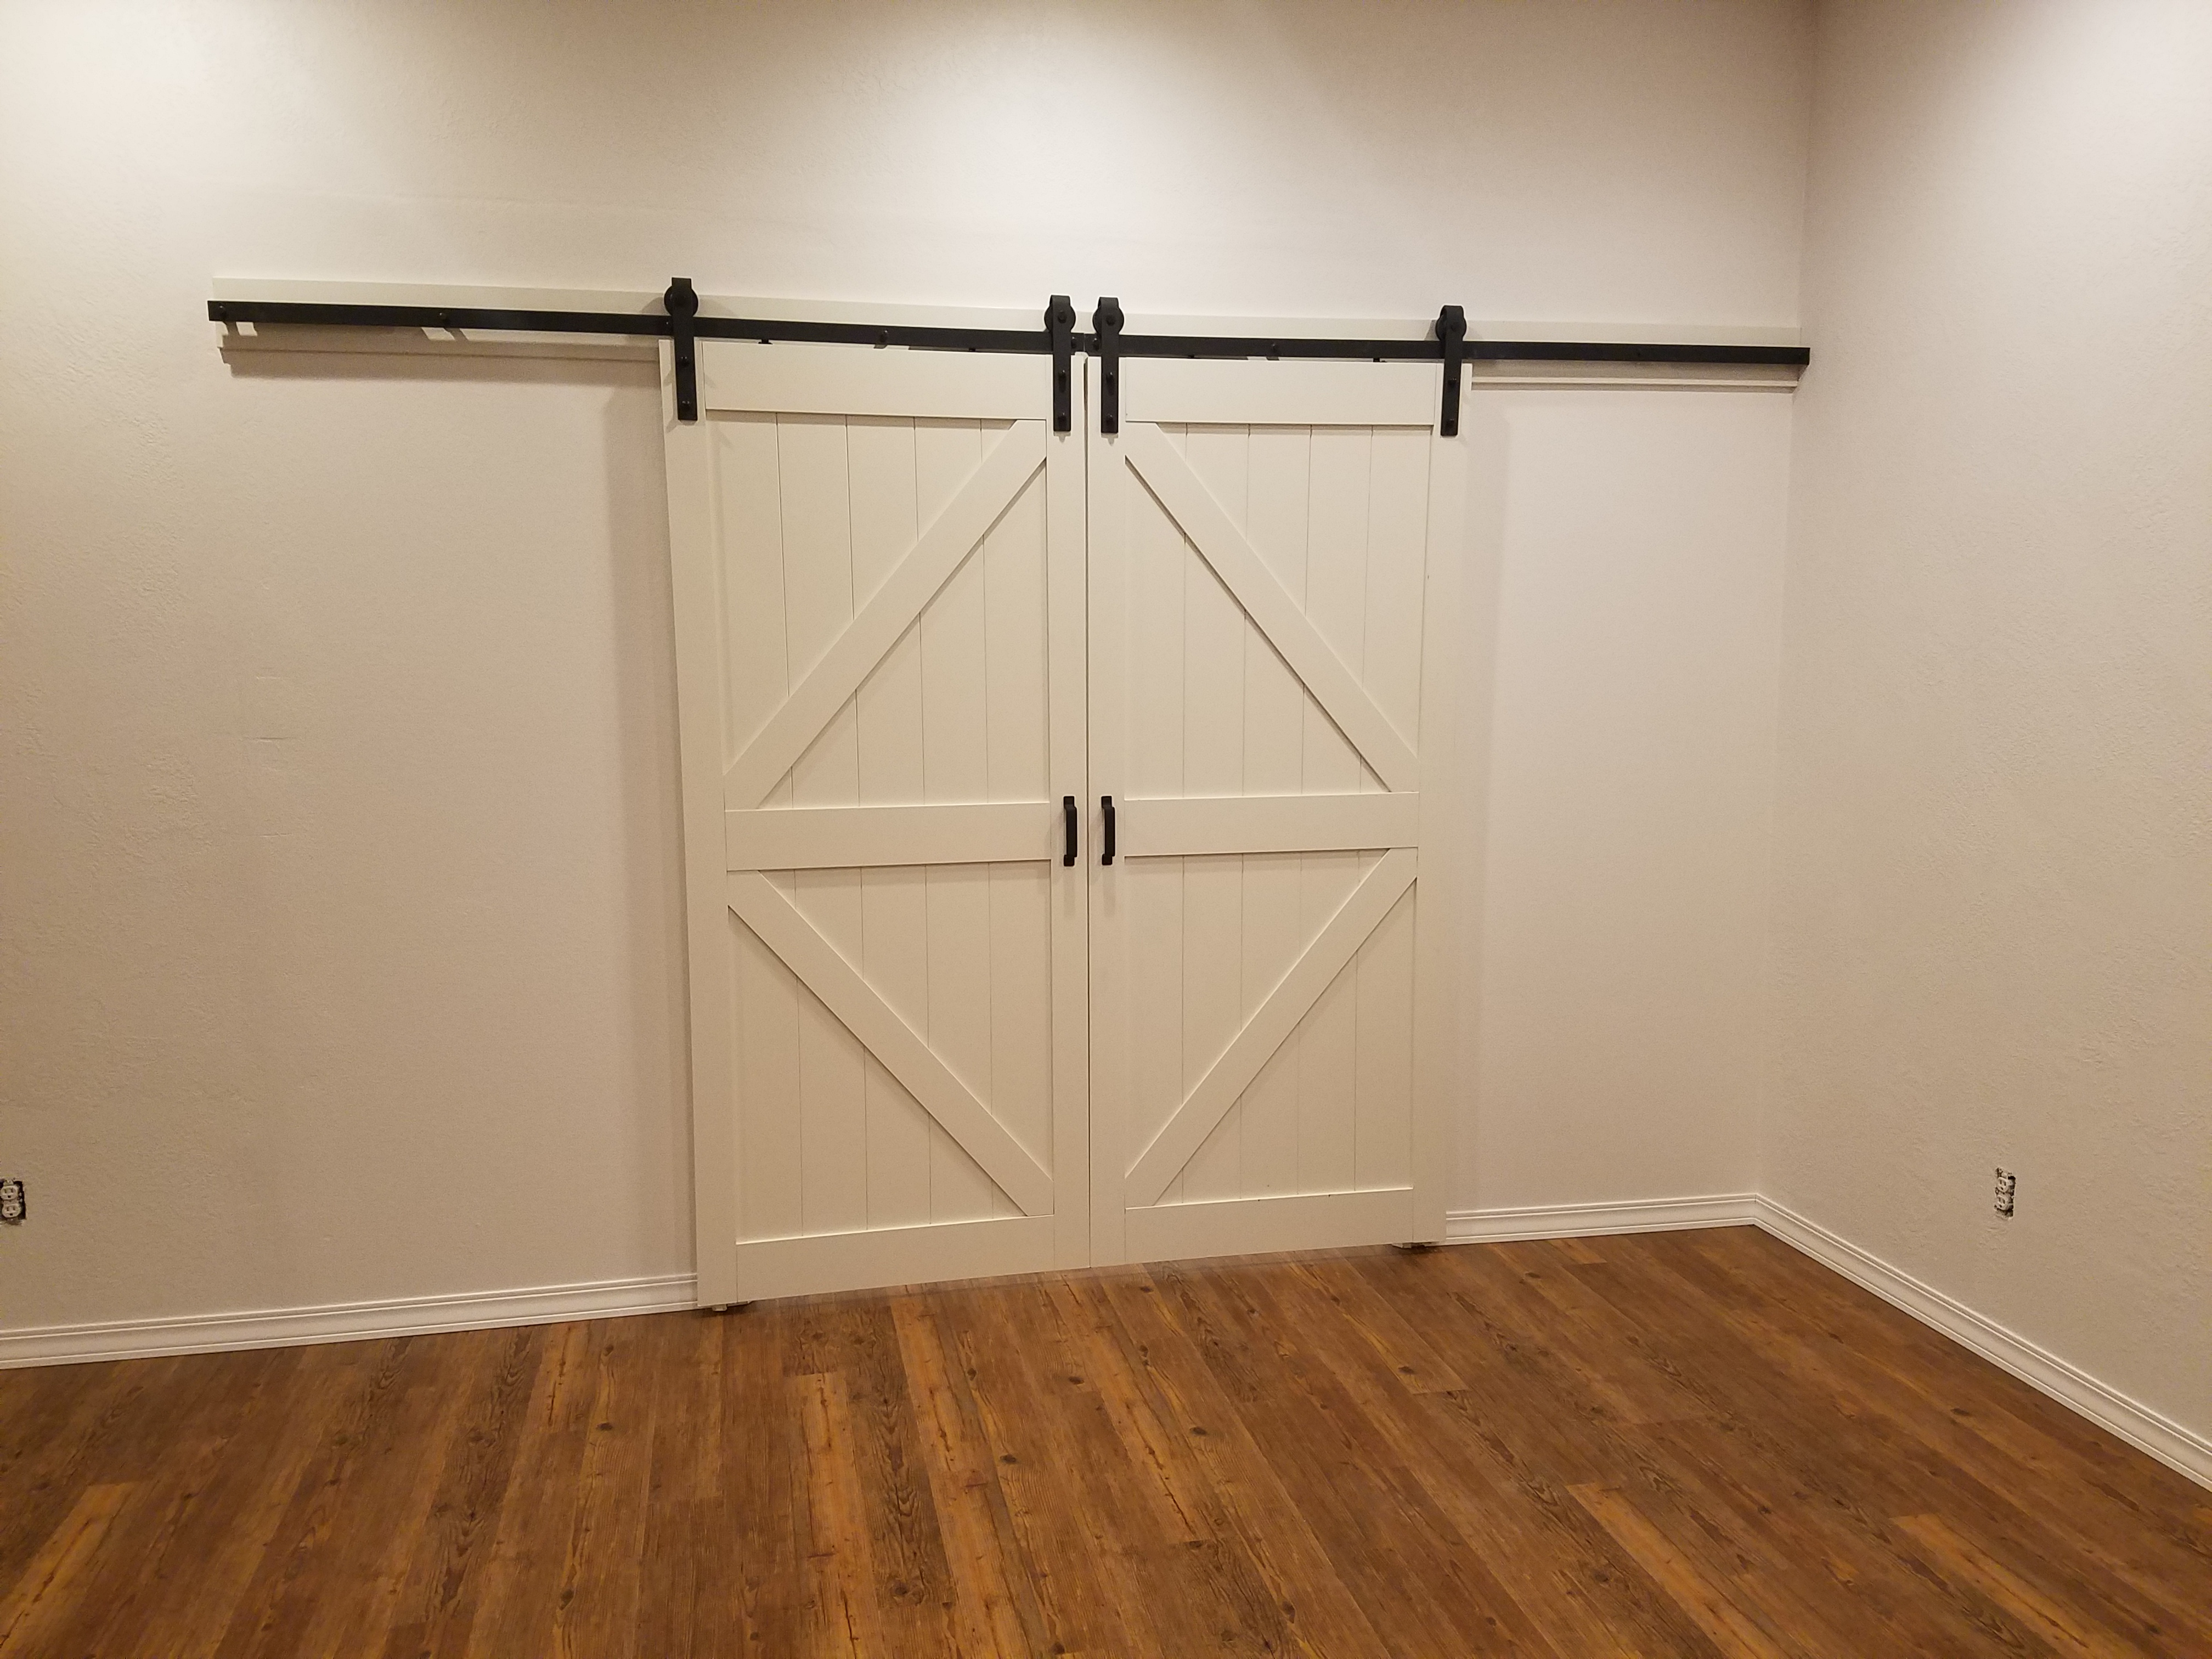 Finished Wall With Installed Barn Doors